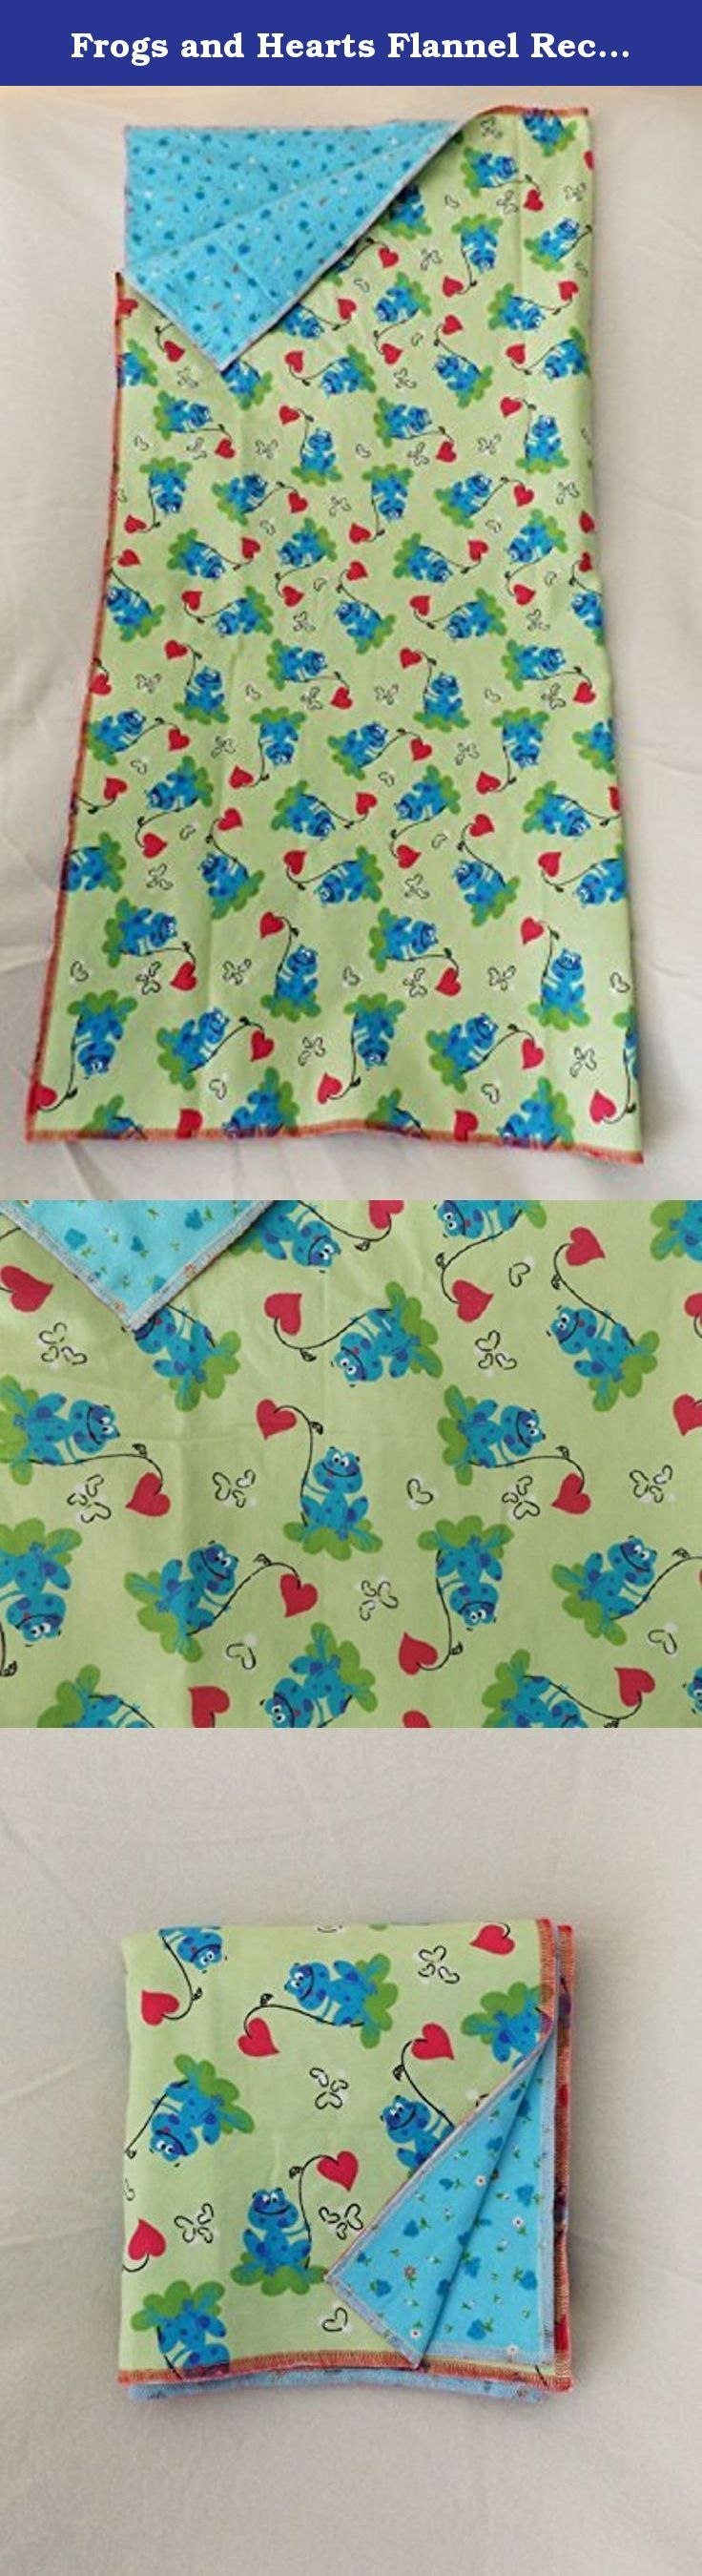 Frogs and Hearts Flannel Receiving or Swaddling Blanket, Double Layer, 2 Layer Serged Blanket, New Design, Crib or Stroller Blanket. New design for 2015. Double layer flannel receiving or swaddling blanket with serged edges. New design allows for a flatter edge for easier swaddling, with less bulk. This new edge gives a smoother tuck with less of a bulge, so the tuck is more snug. Two layers of premium 100% cotton flannel provide a warm and soft blanket for your baby. Blue frogs with pink...